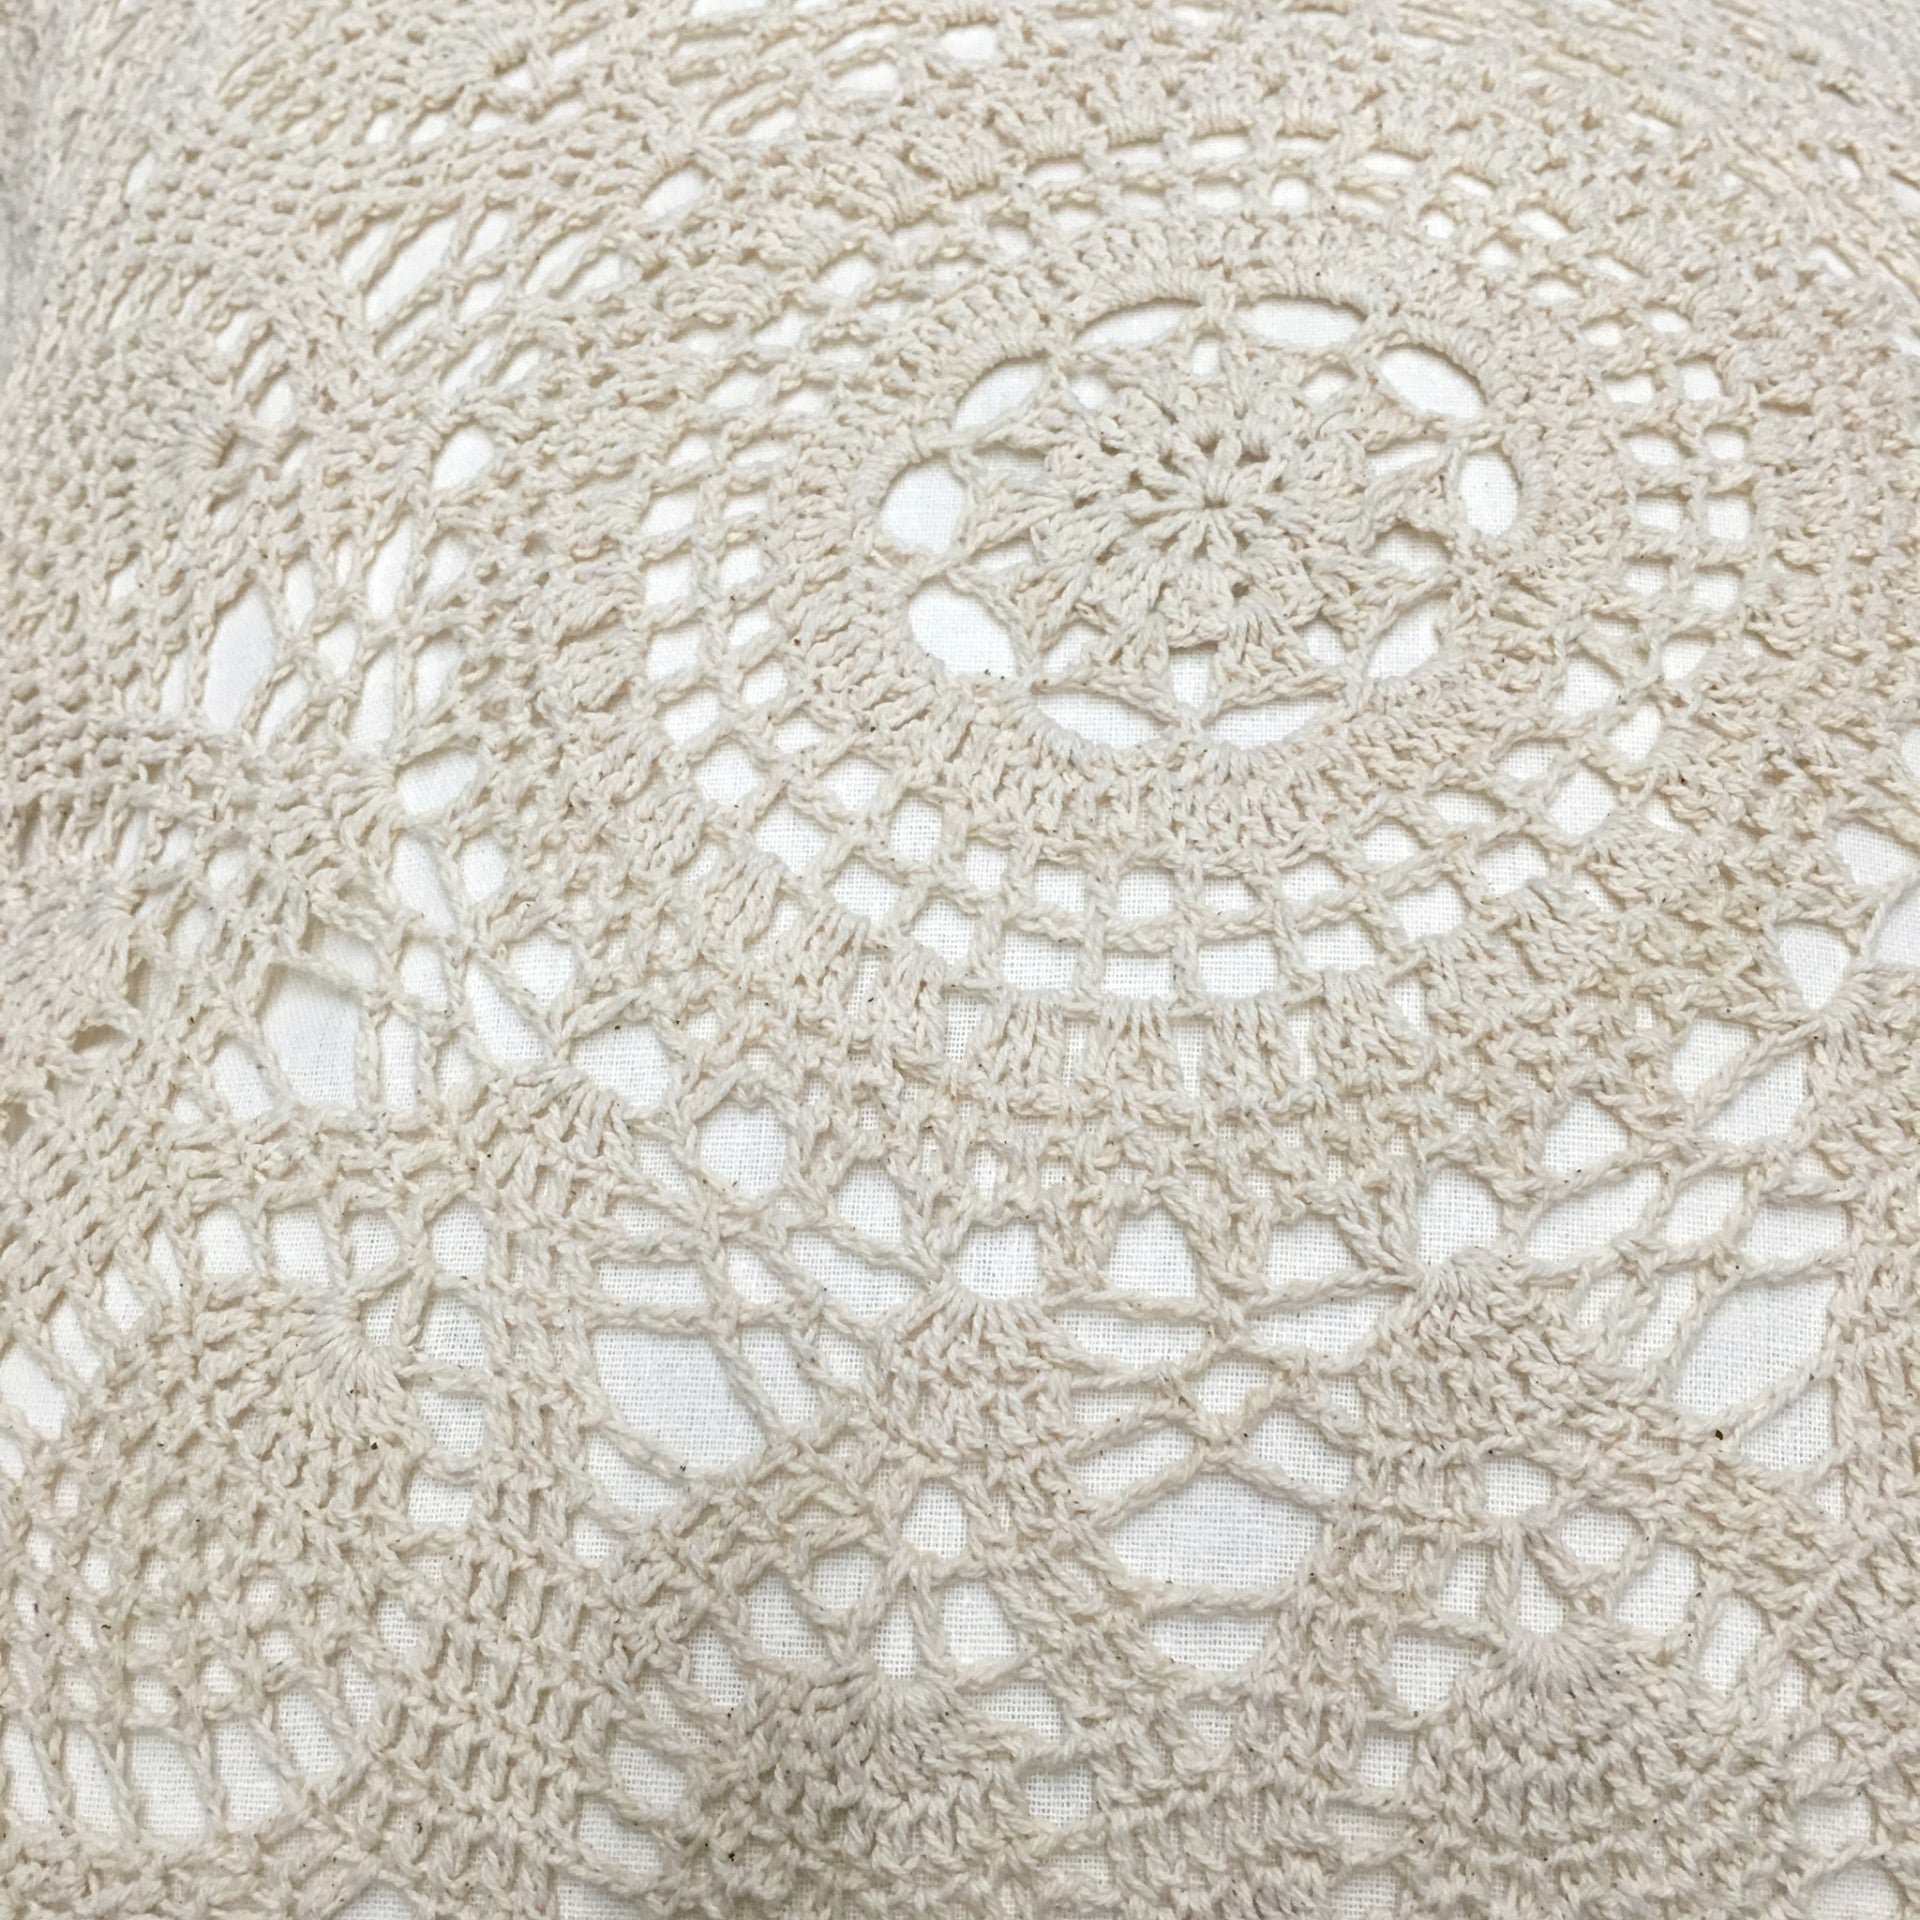 Federa cuscino 45x45 Crochet - Wanderlust Factory ● Mobile Fashion Boutique